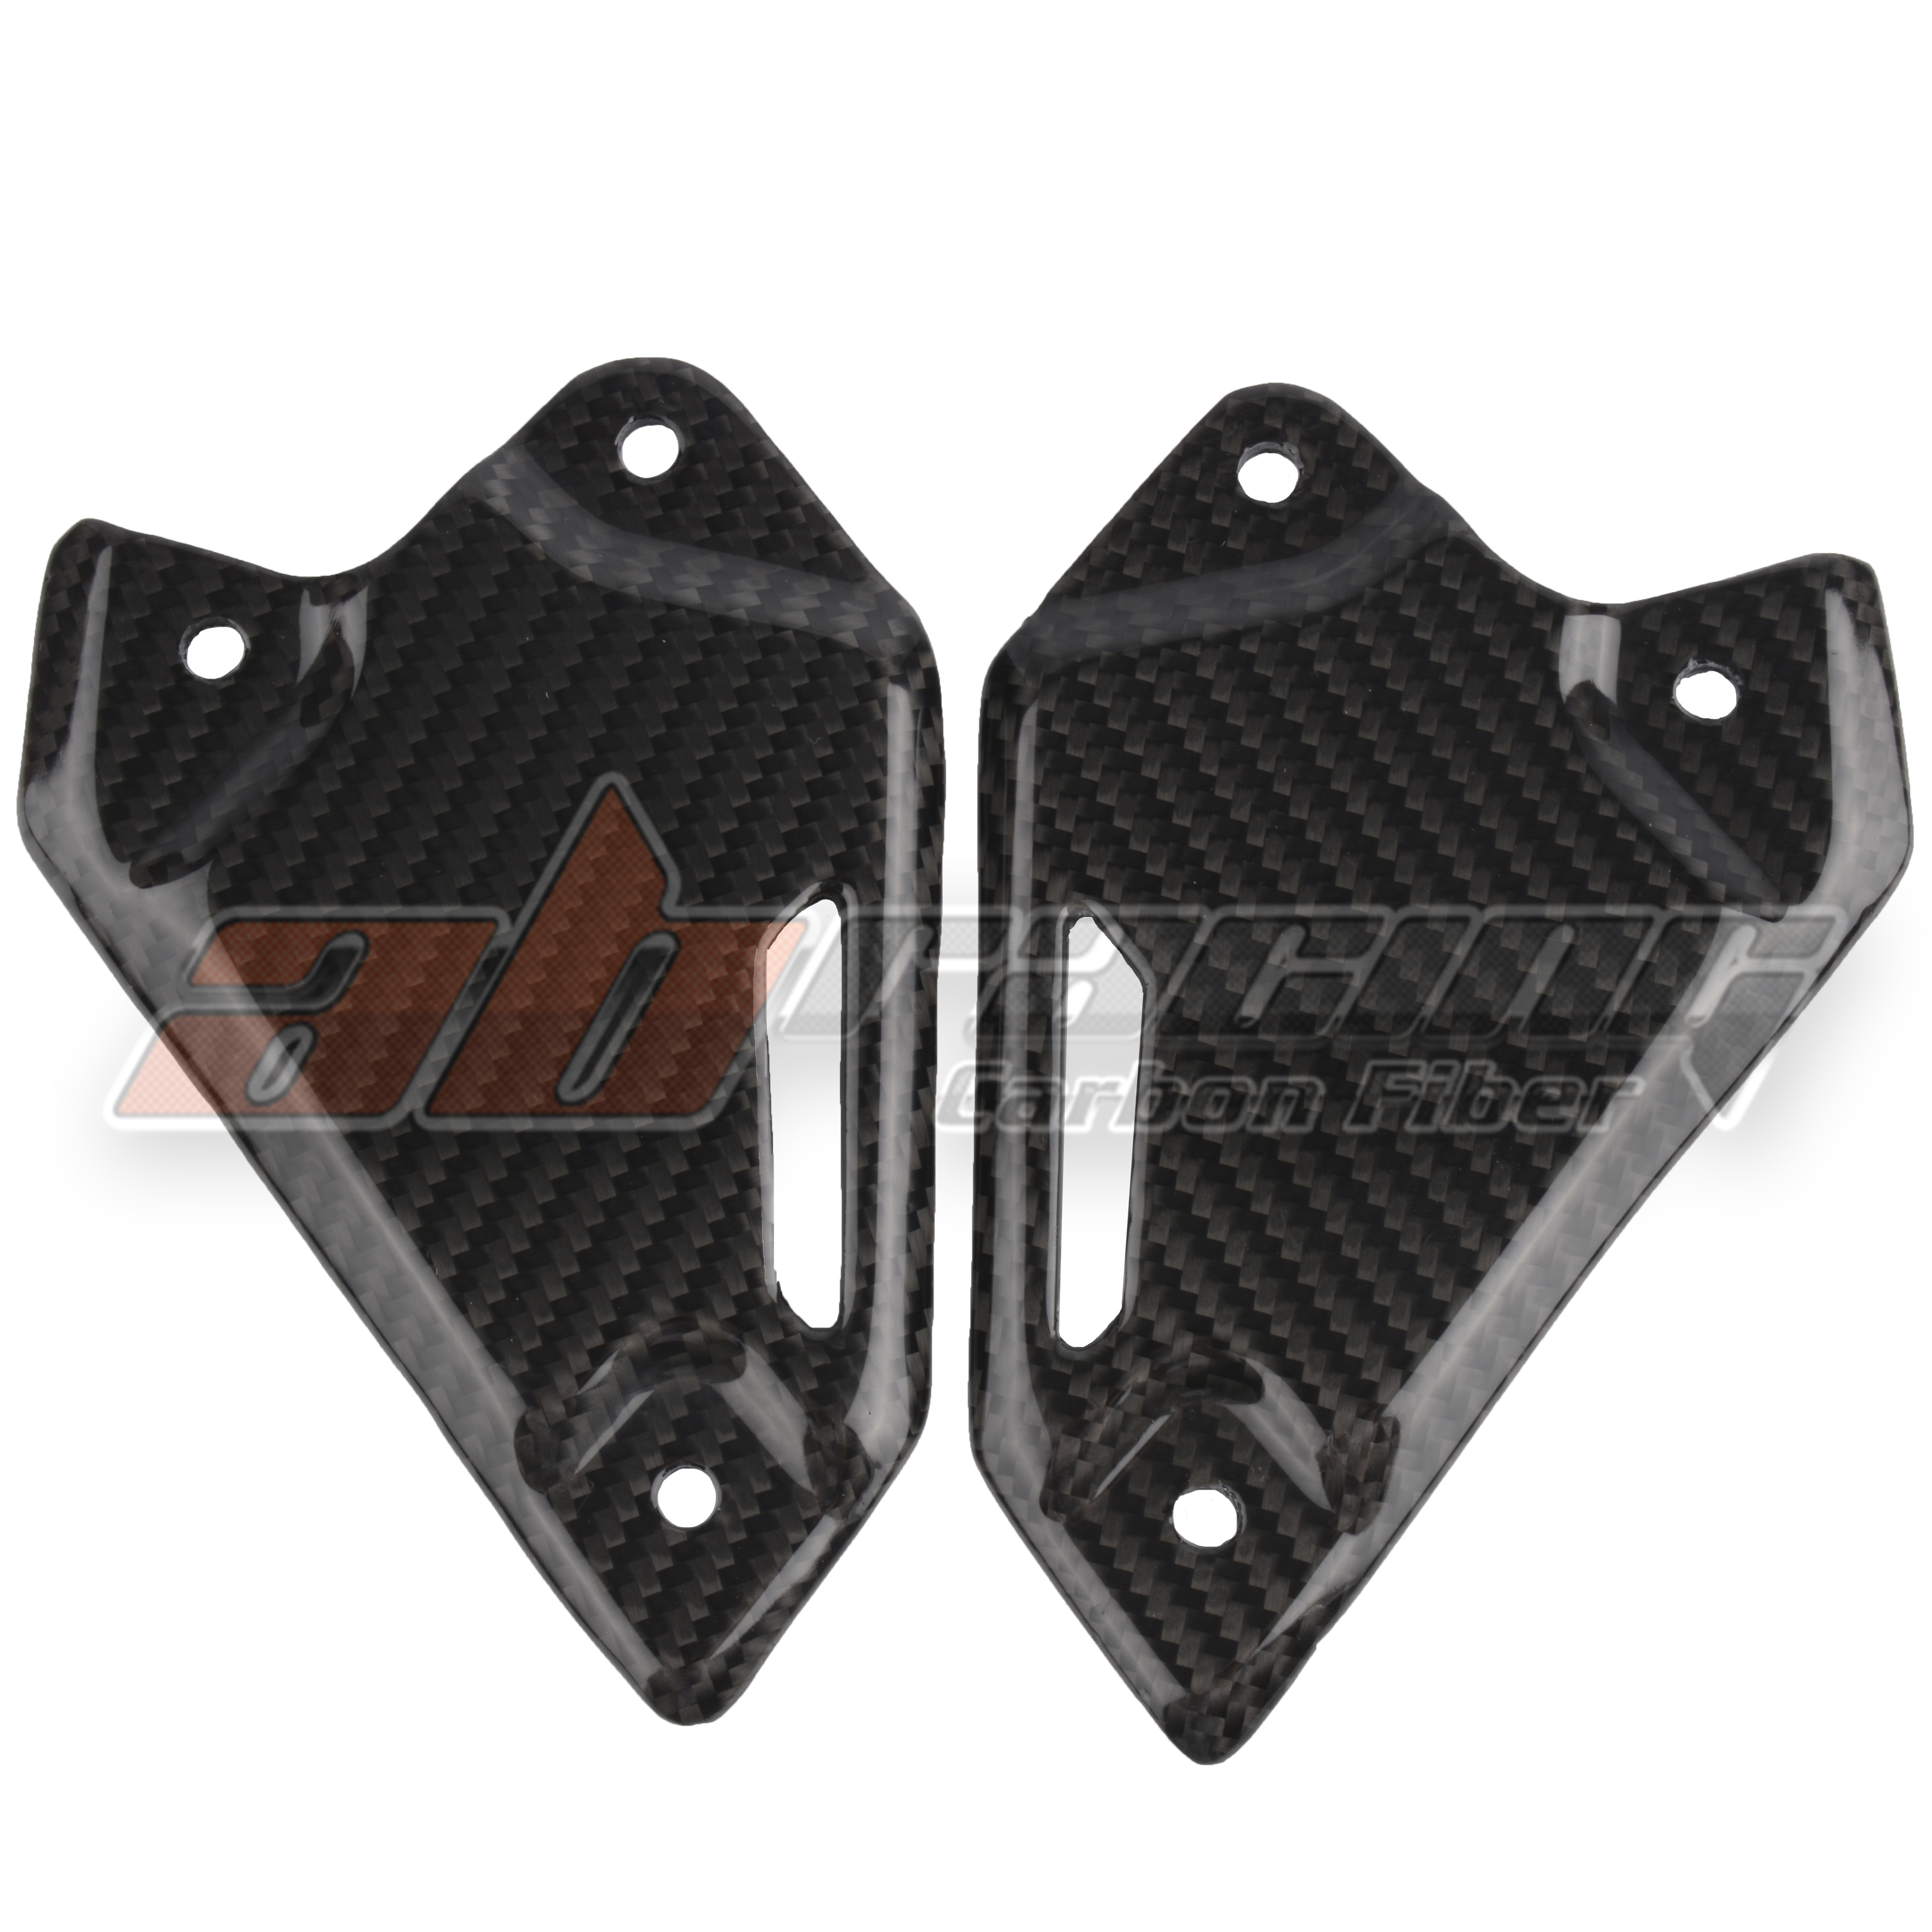 Rearset Foot Peg Mount Heel Guard Plate Cowling For Kawasaki Z900 /ABS 2017-2019 Full Carbon Fiber 100%  Twill